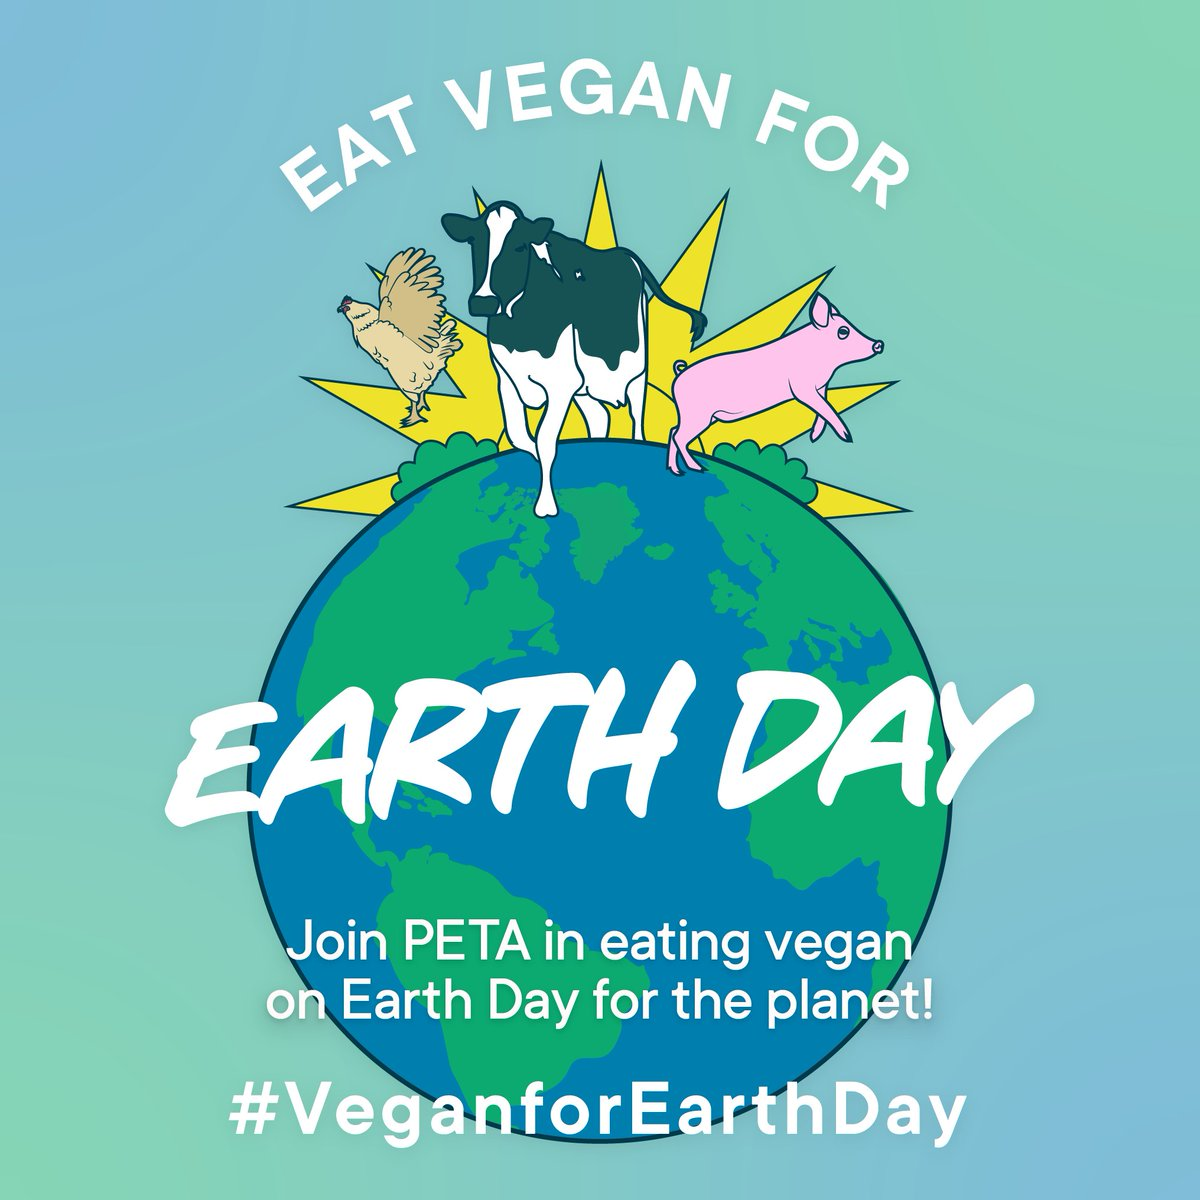 @bifnaked Tomorrow is #EarthDay! Join us in celebrating by retweeting and inspiring everyone to eat #VeganforEarthDay 💚🌎🌱   By choosing to eat vegan—even for just a single day—you're choosing to help save our planet and everyone on it! 😊 https://t.co/3wQNIhsVgR https://t.co/c51kB0r0rw